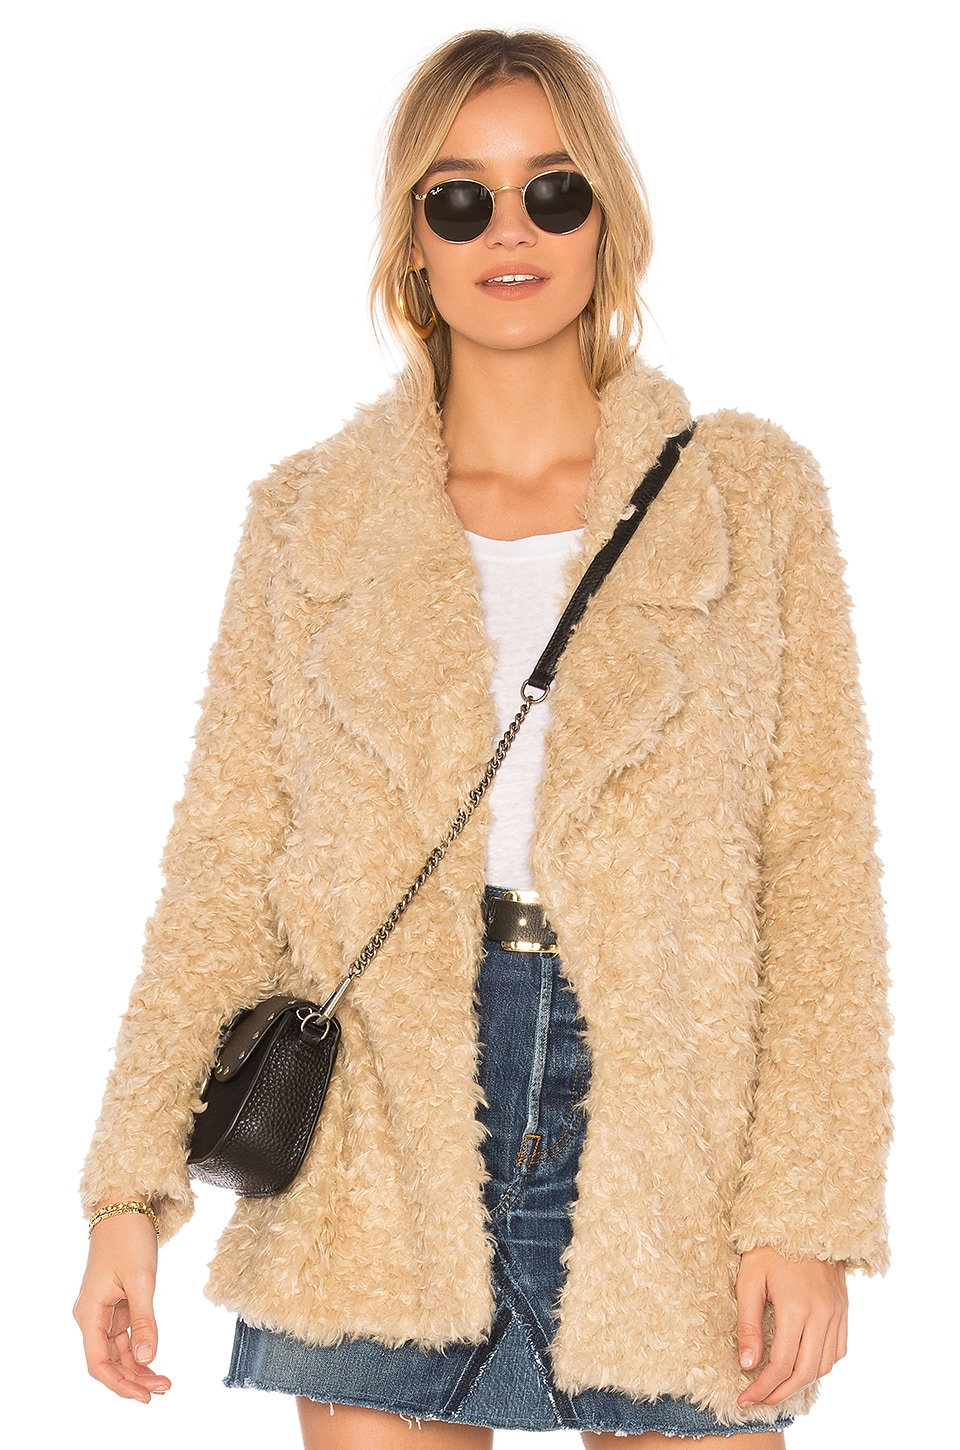 Tularosa Violet Faux Shag Coat in Natural